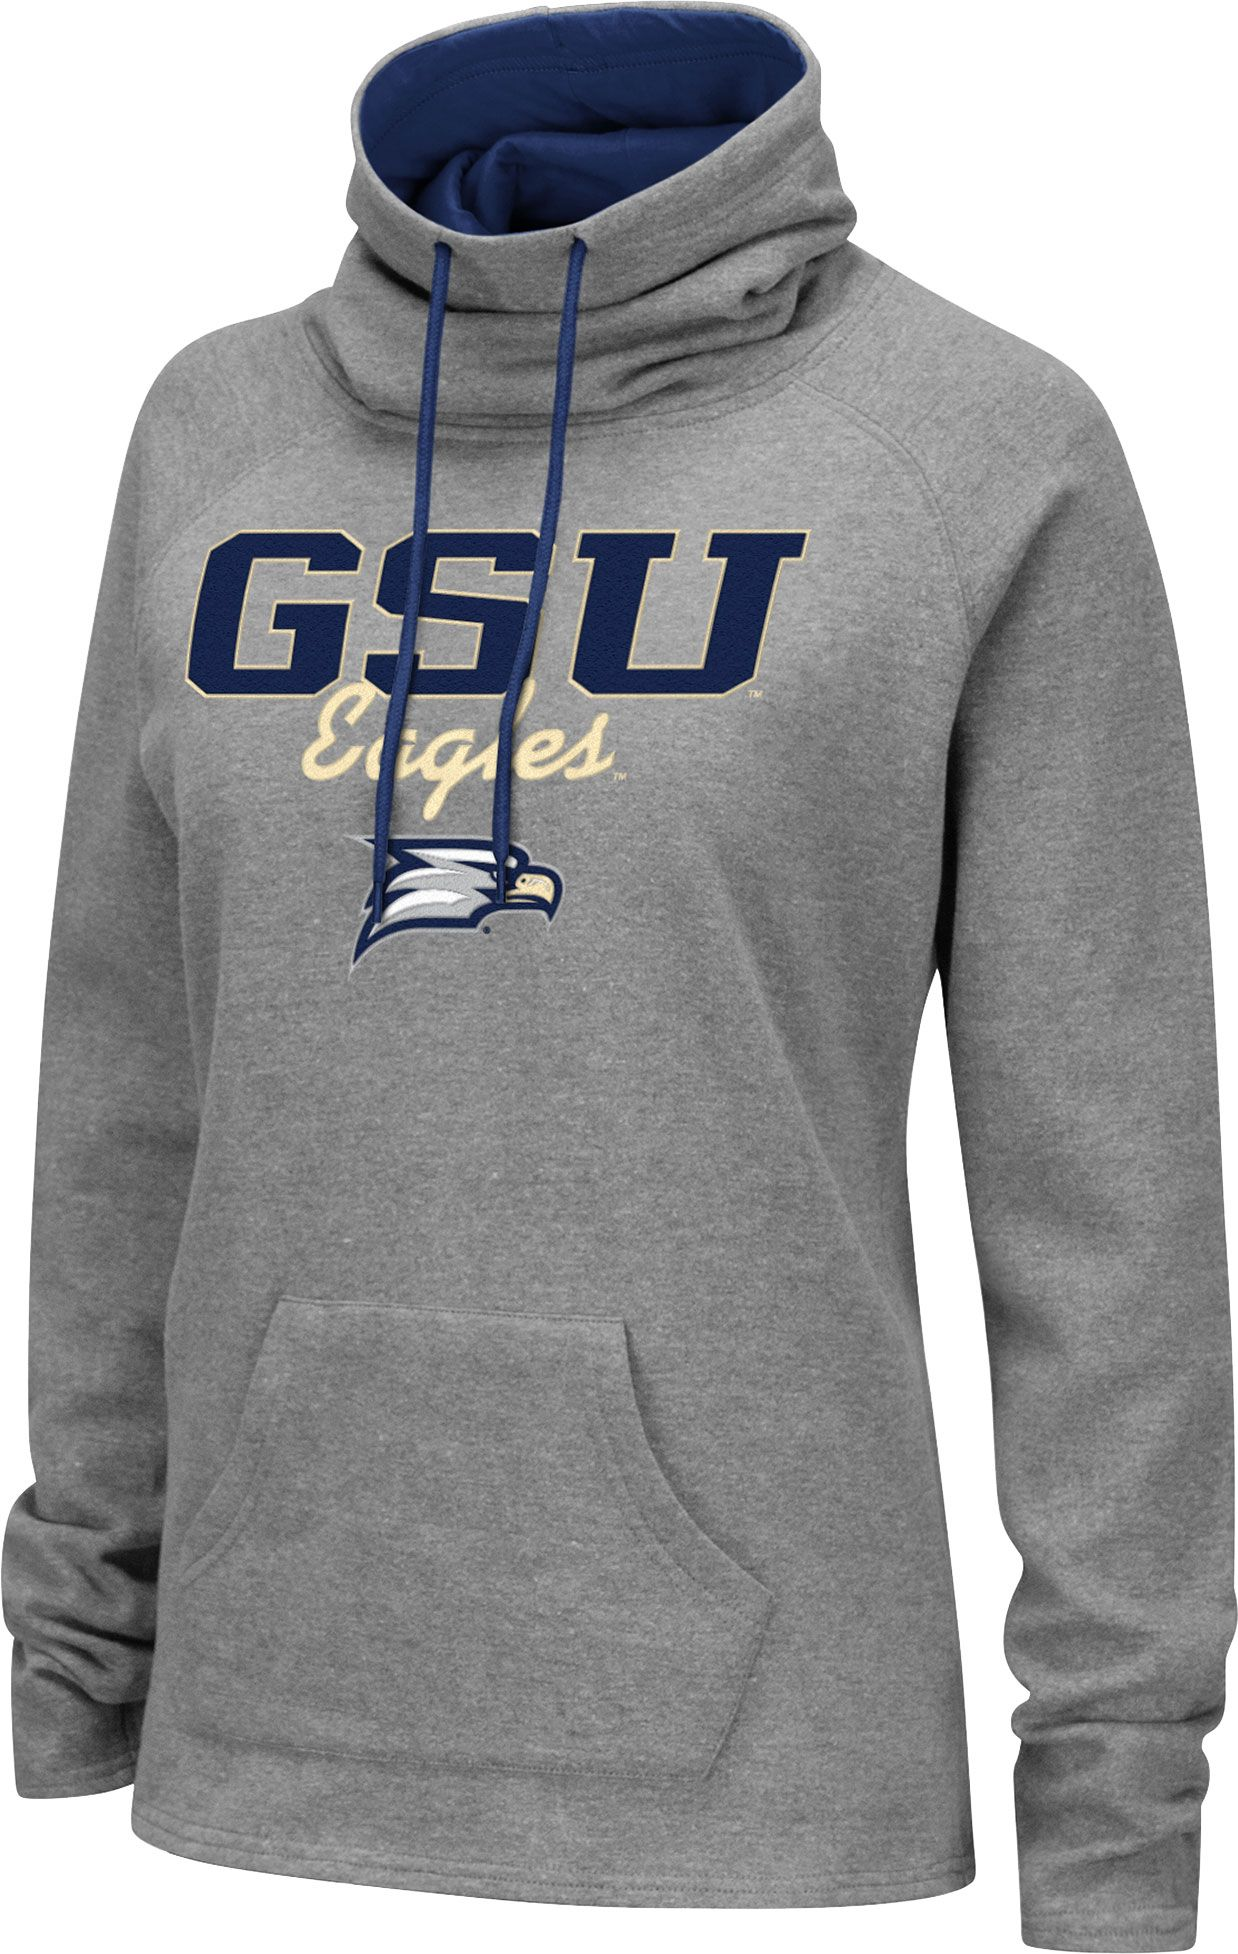 low priced 360bd b8bac Colosseum Women s Georgia Southern Grey Funnel-Neck Pullover Sweatshirt,  Gray